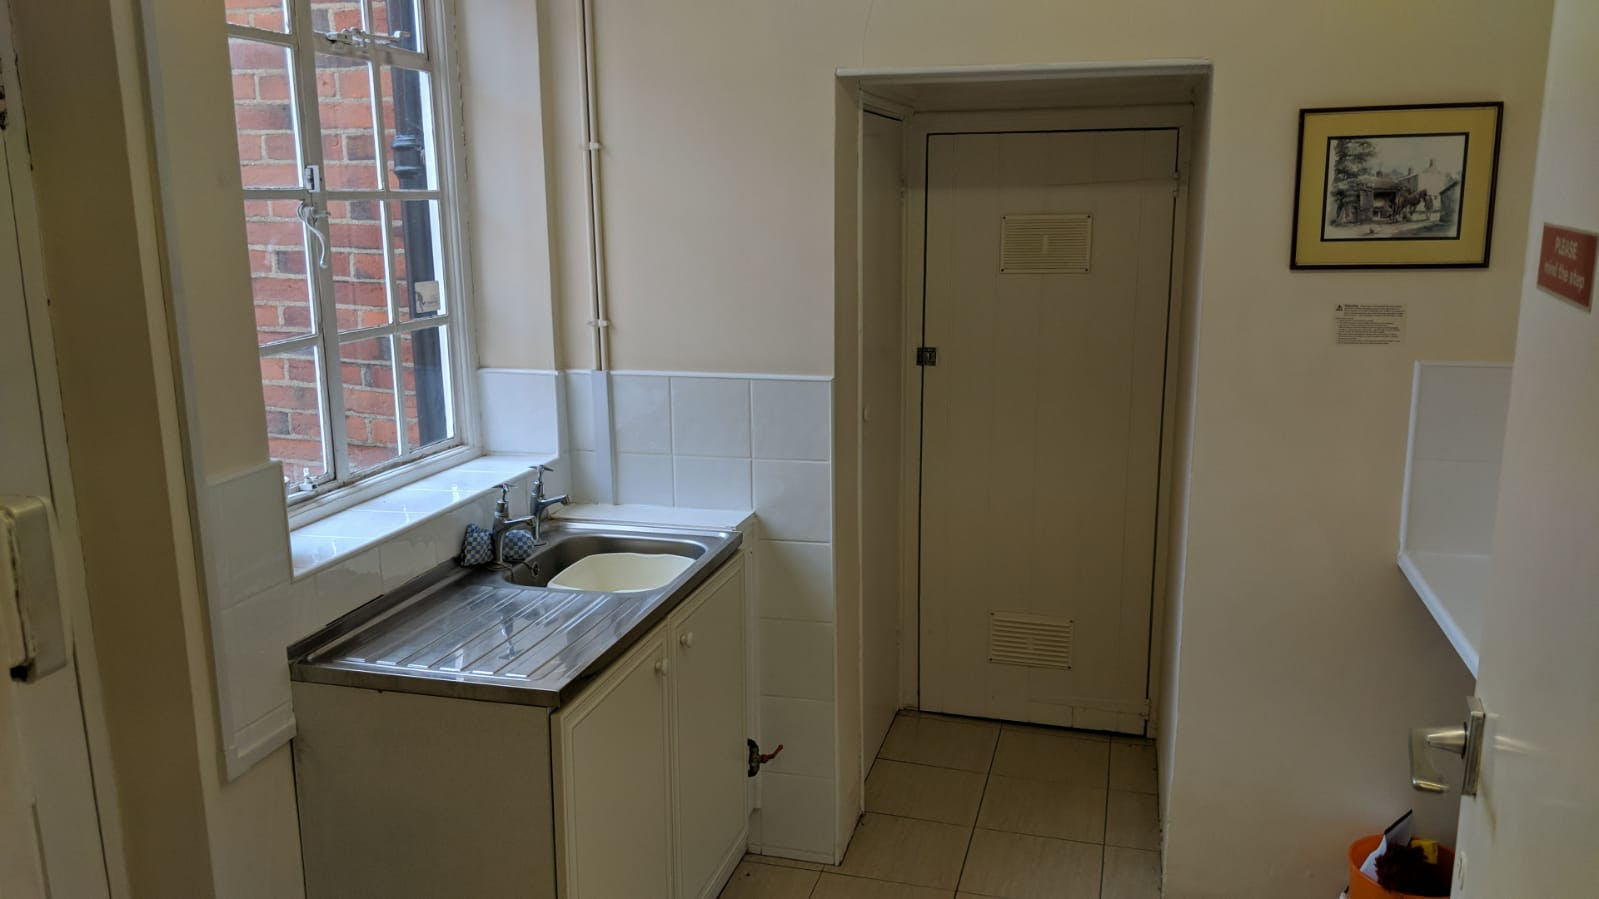 Dudley House, Kings Road, Fleet, Offices To Let - IMG-20181109-WA0013.jpg